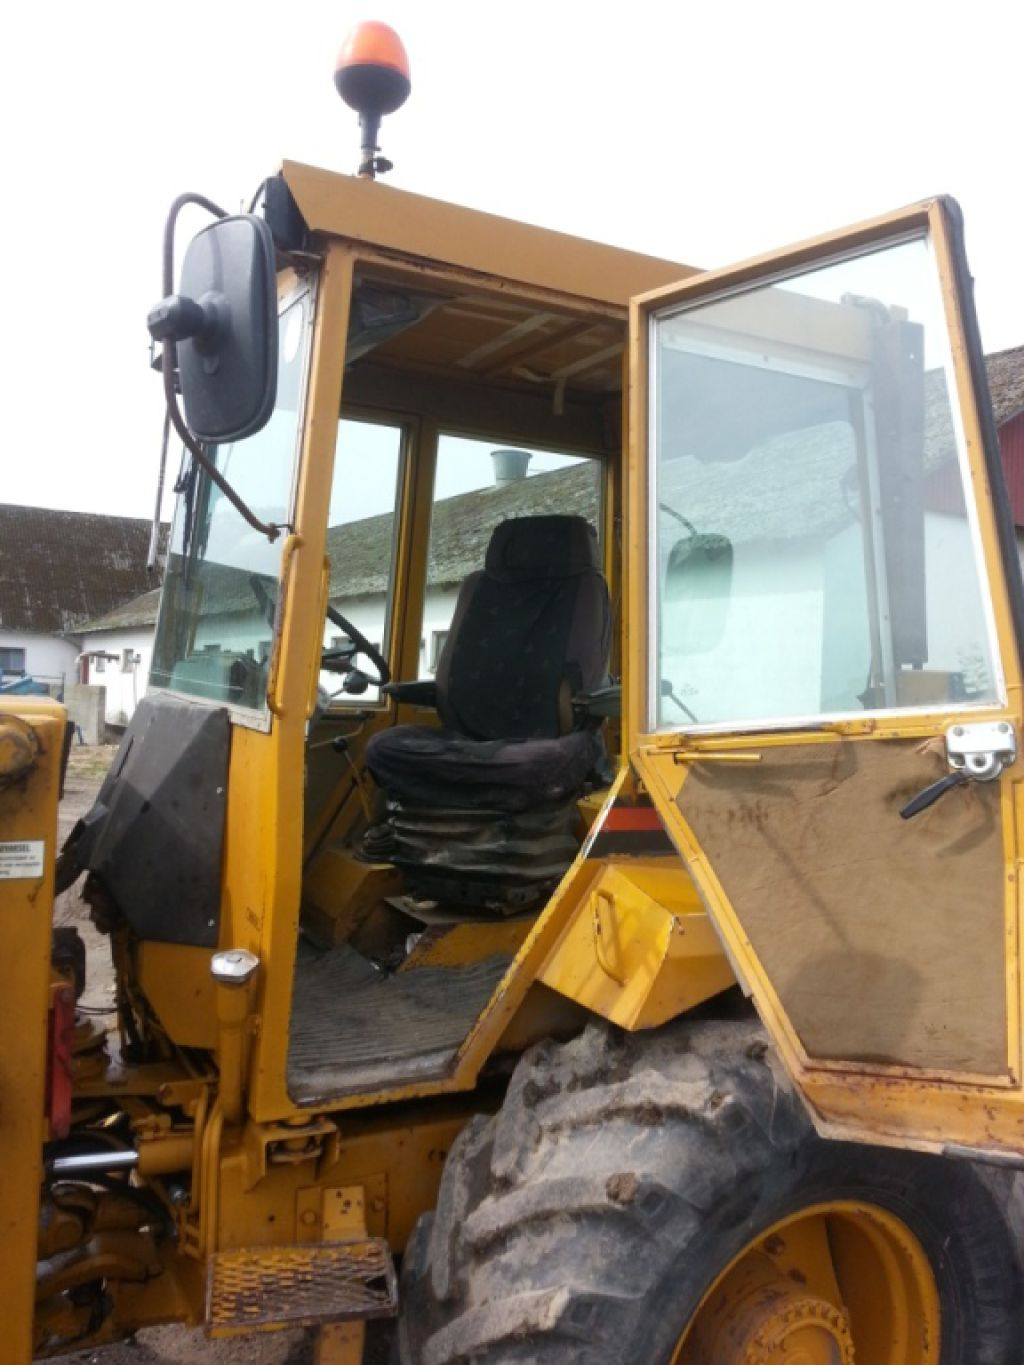 Hydrema Rendegraver / Hydrema Backhoe loader for sale. Retrade offers used machines, vehicles ...